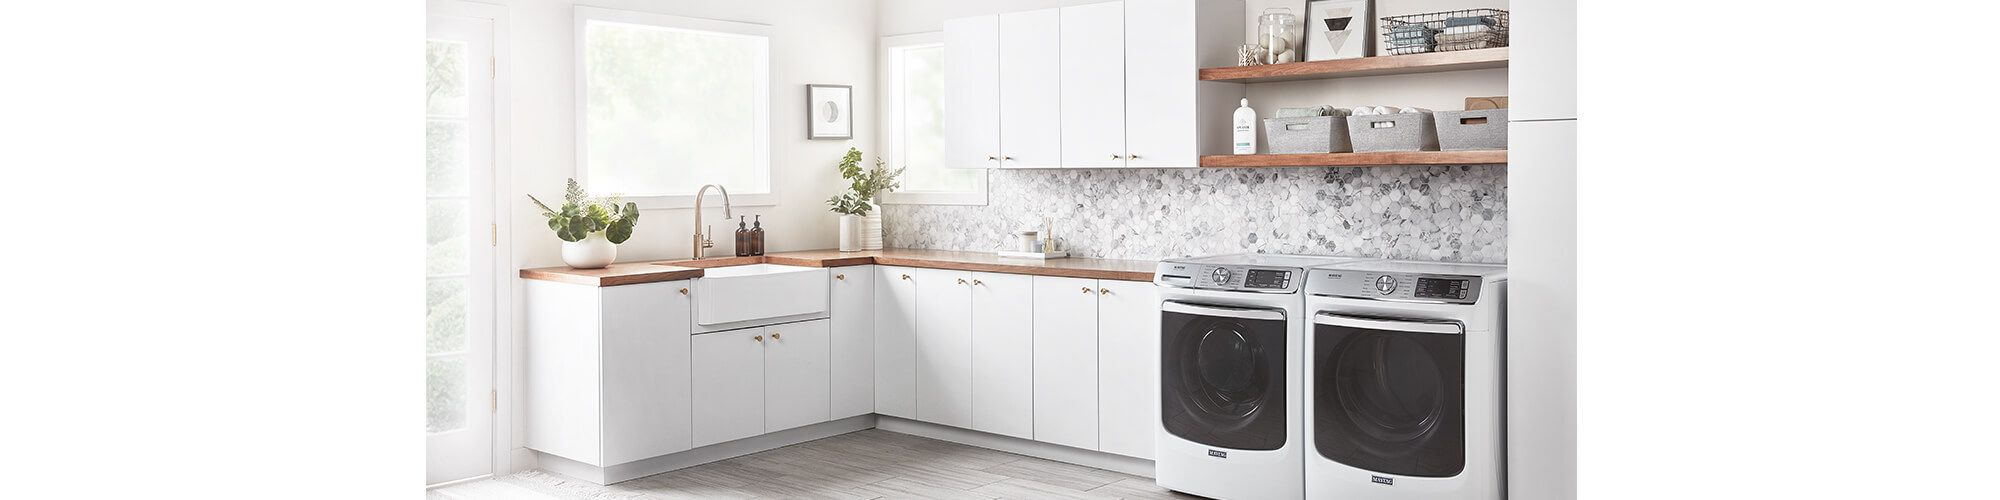 A large laundry room with white cabinets, farmhouse sink, and open shelving with neutral organizational baskets